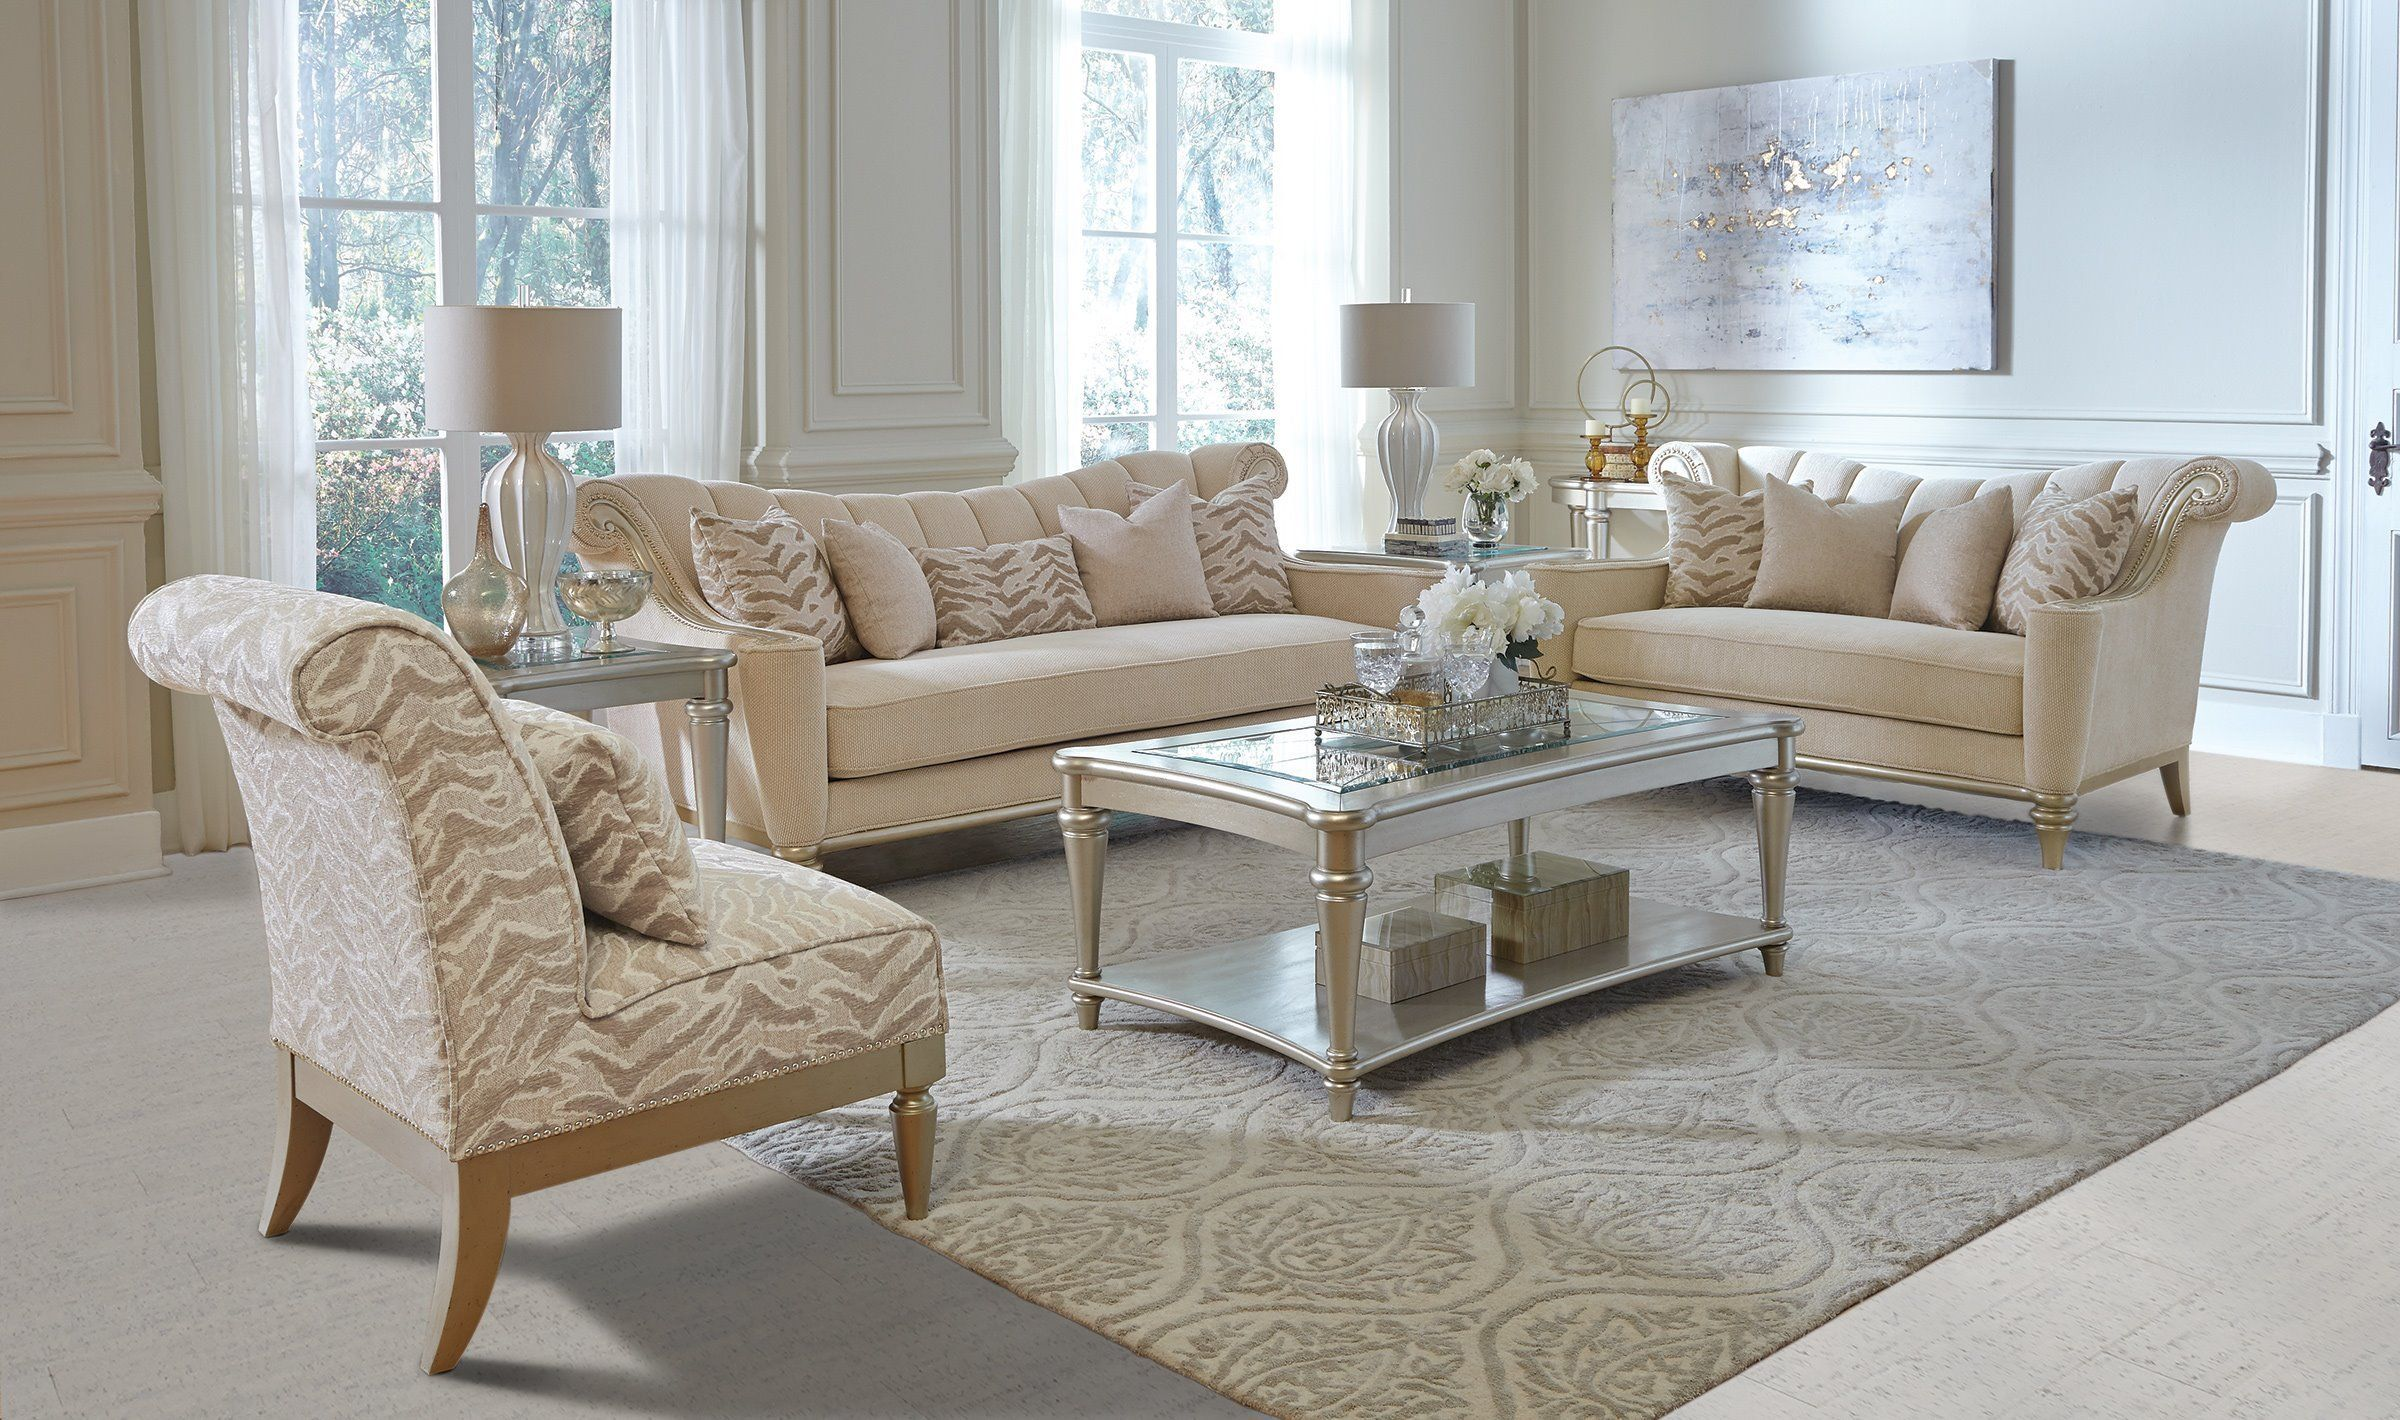 Carmel Occasional Collection In 2021 Modern Living Room Set Living Room Sets Formal Living Rooms Living room set pictures